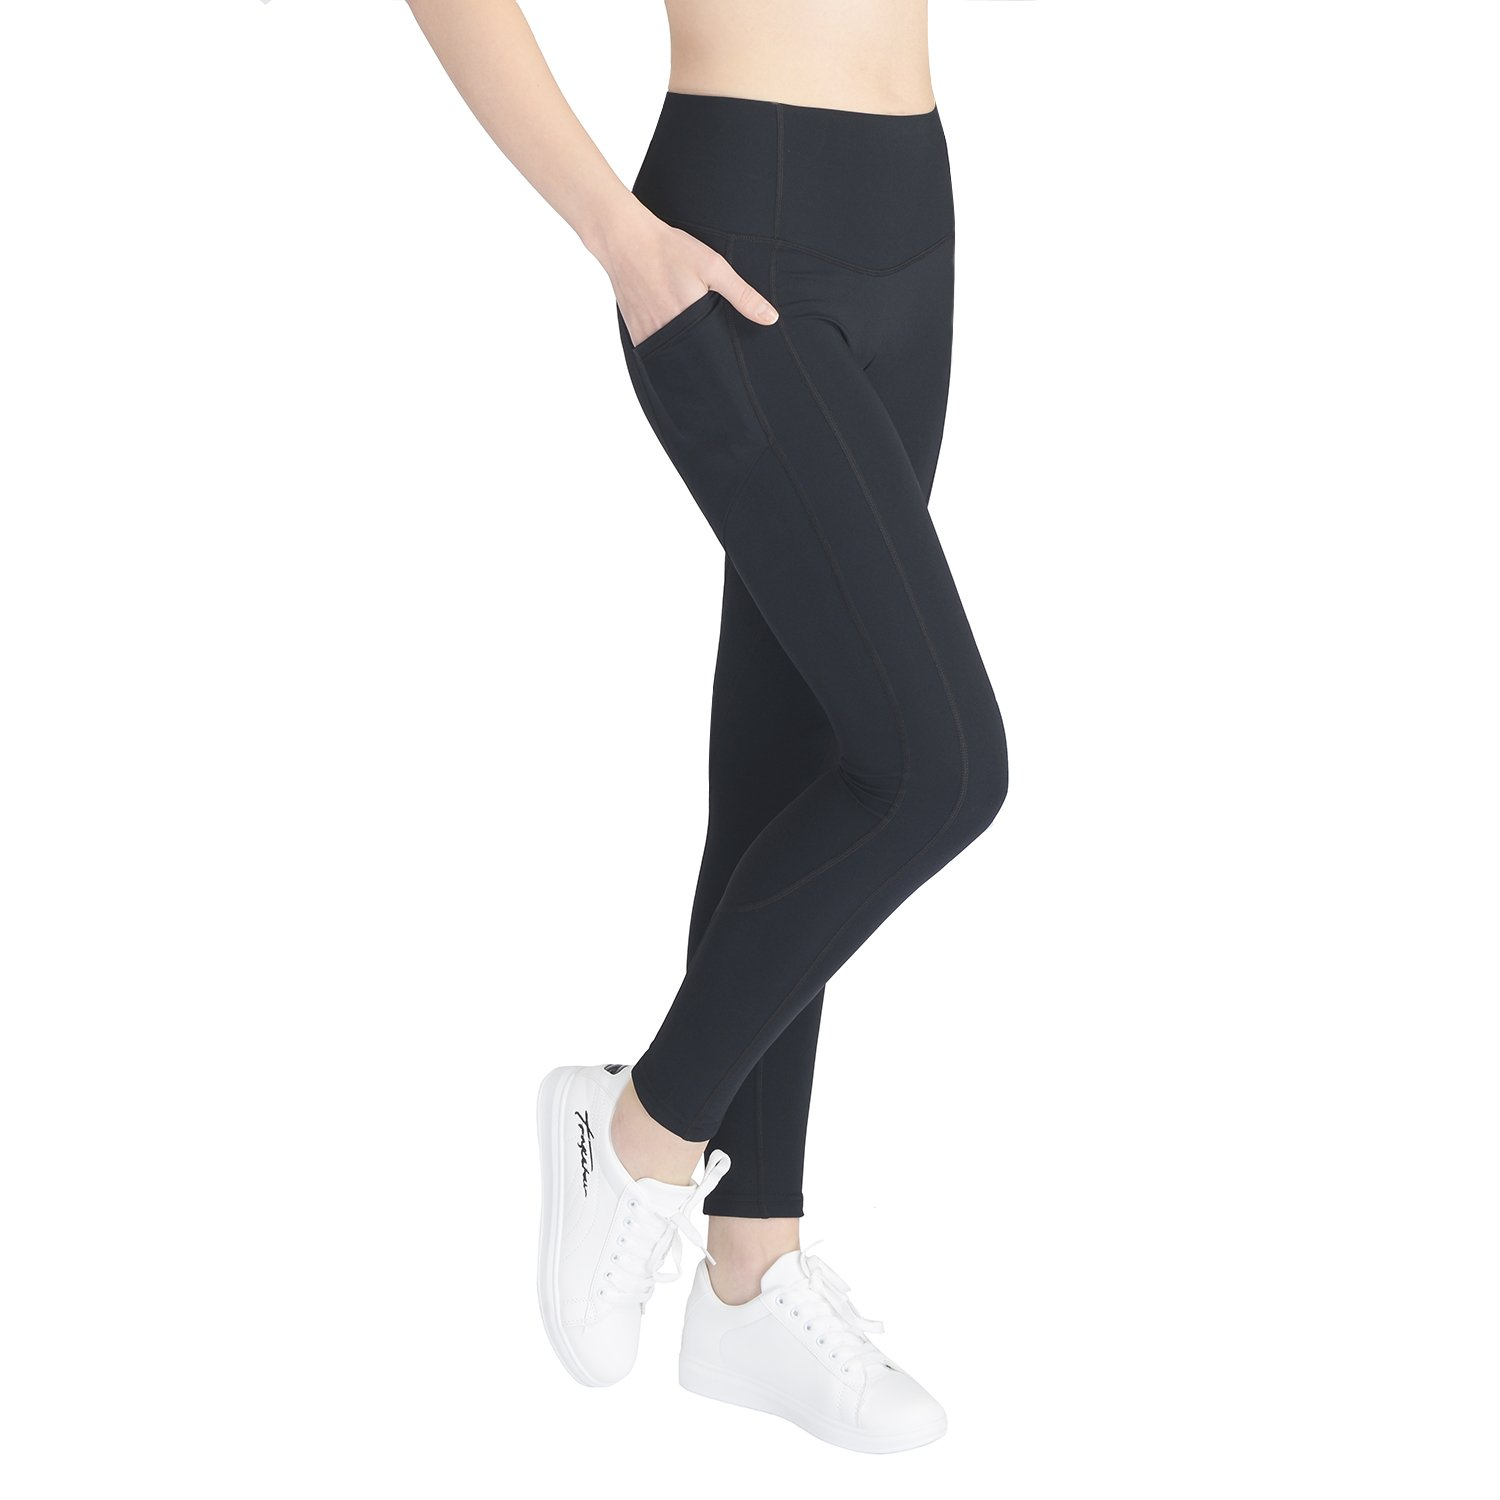 c39704e13b0349 Material: Ankle / Capri leggings: 85% nylon 15% spandex ; Thermal Lined  Pants: 78% nylon and 22% spandex 4-way stretch fabric with High Waist Tummy  Control ...